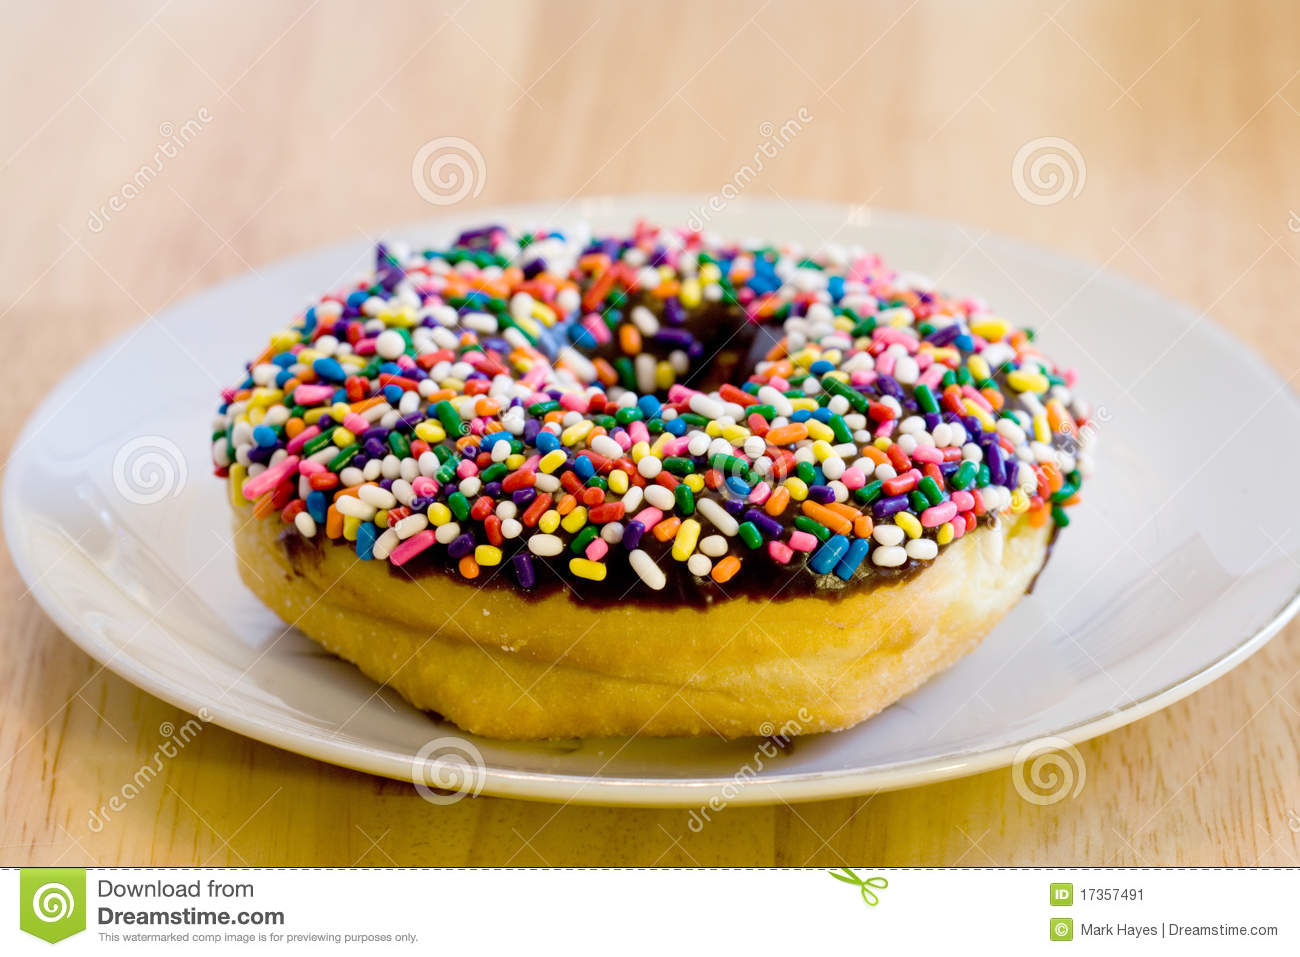 Fresh Chocolate Donut With Sprinkles On Plate